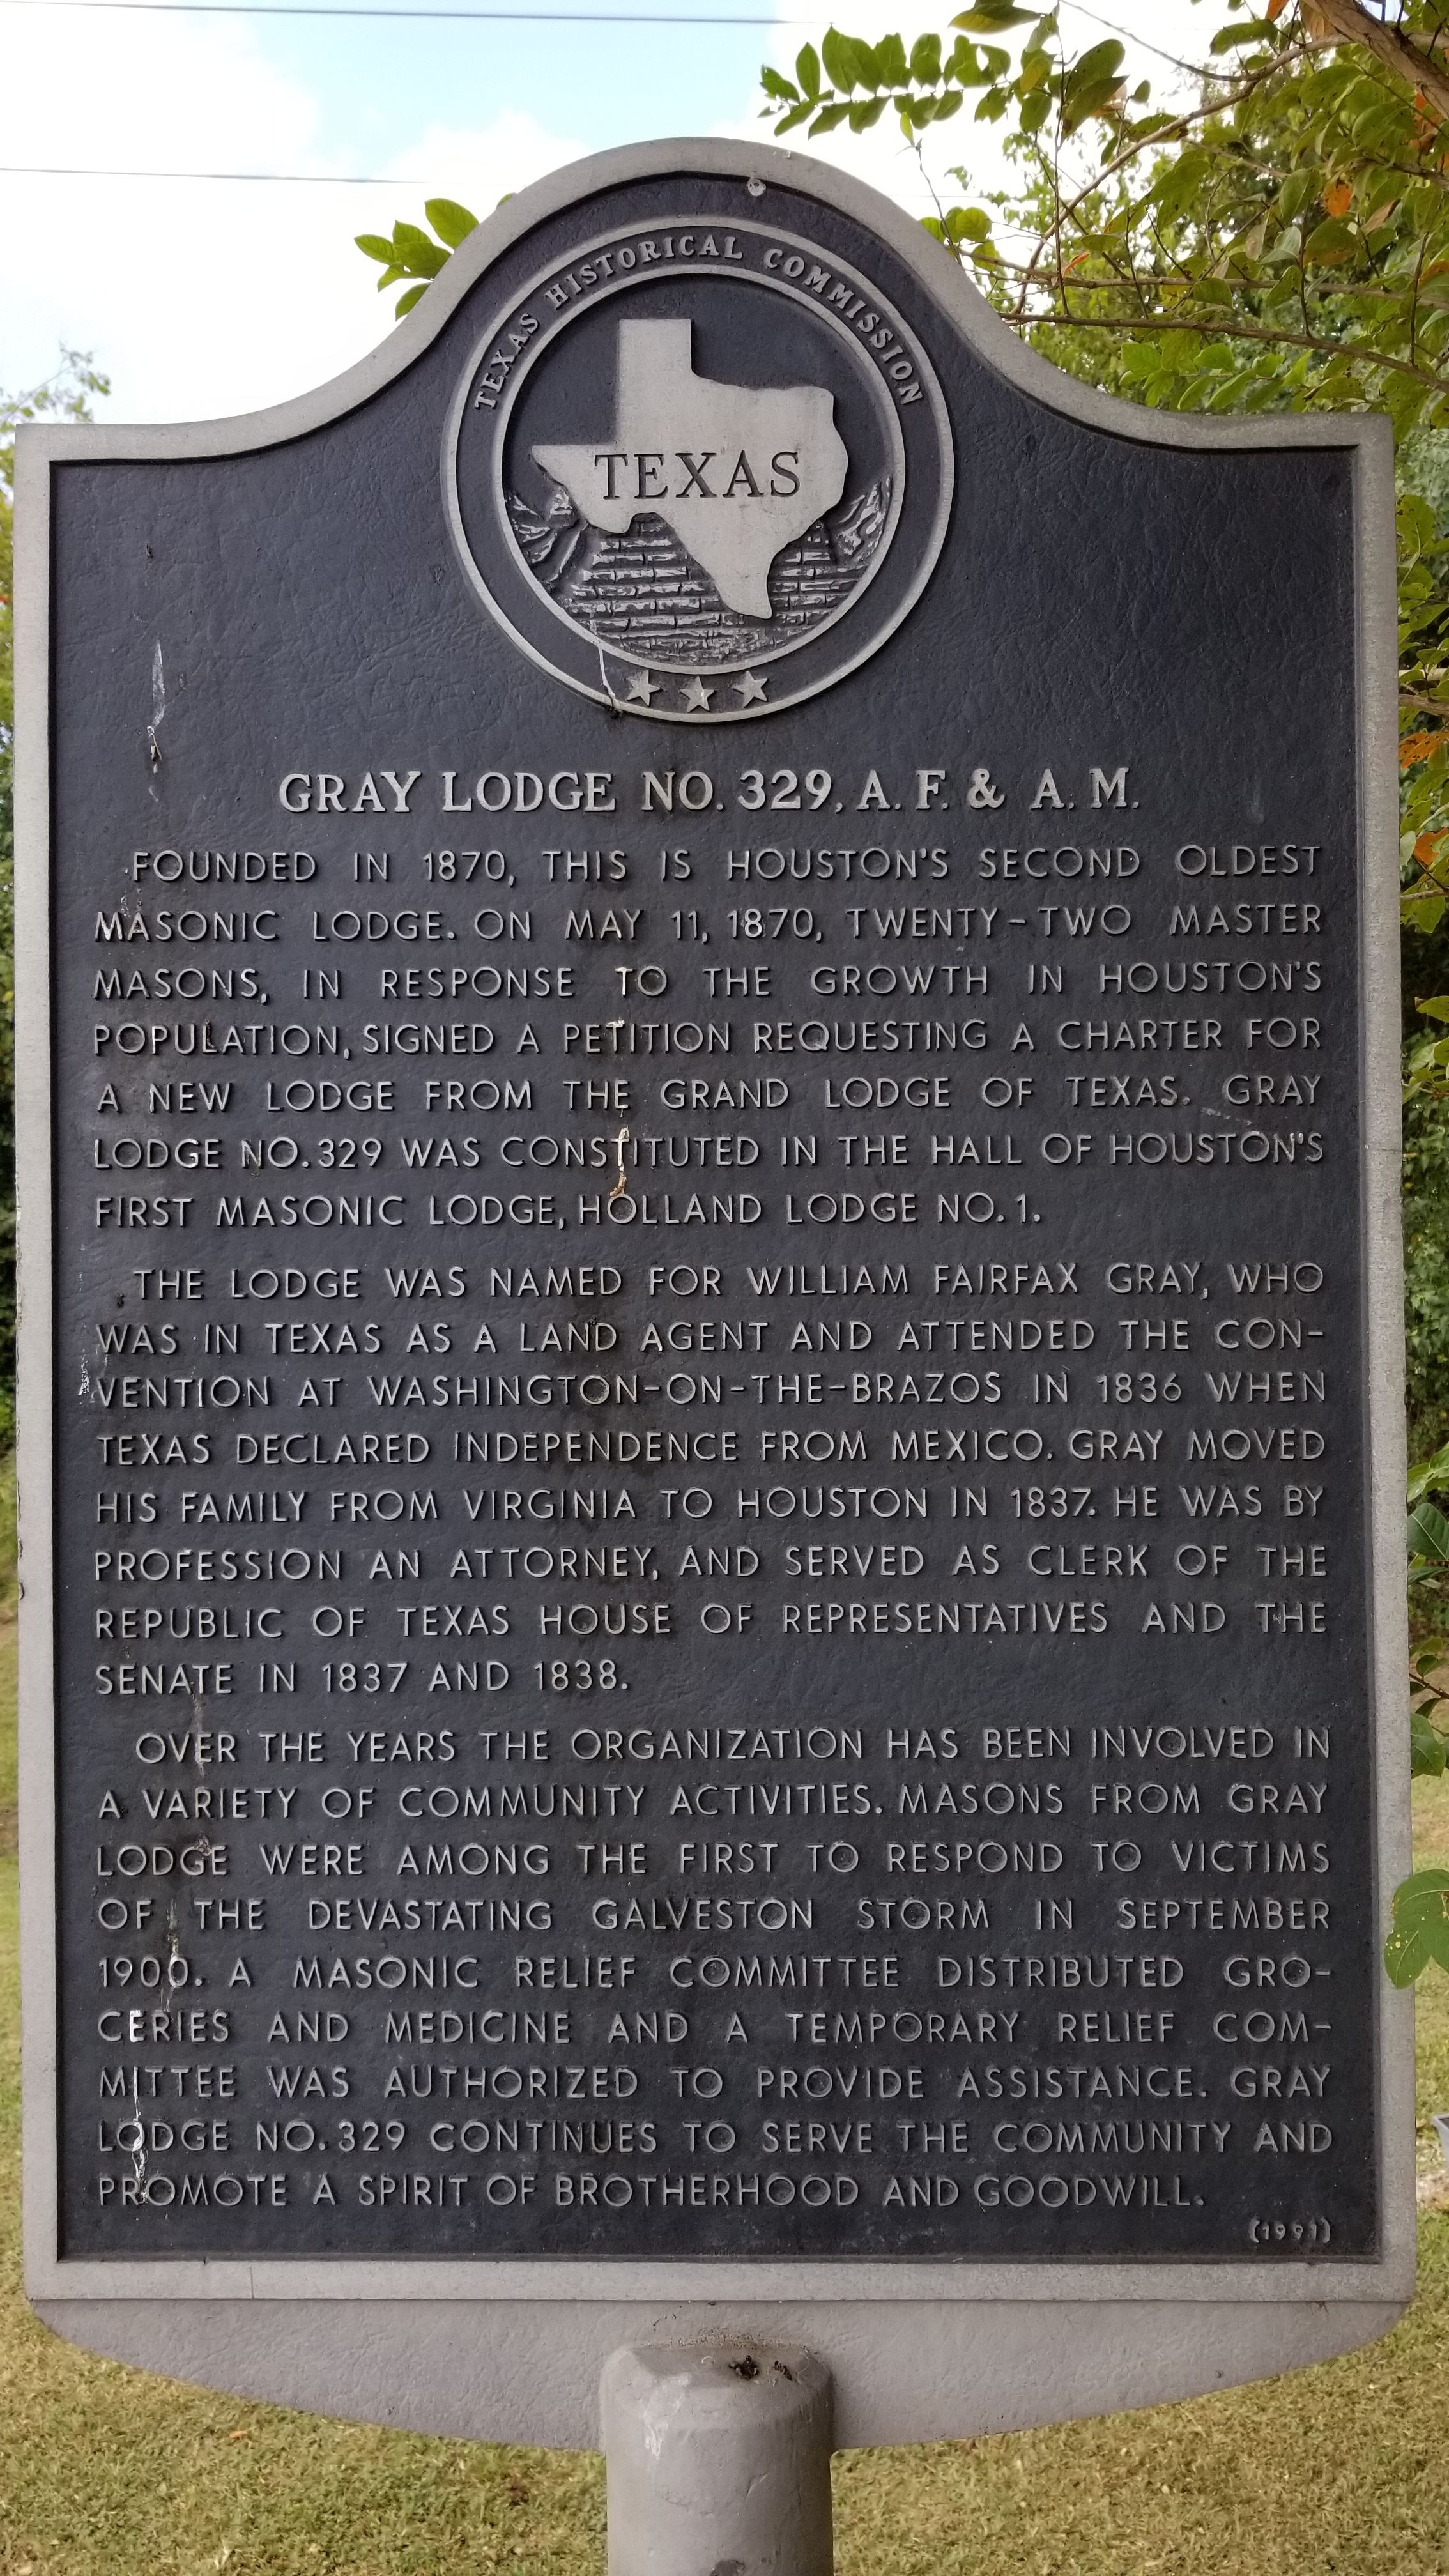 Gray Lodge No. 329, A.F.& A.M. Marker